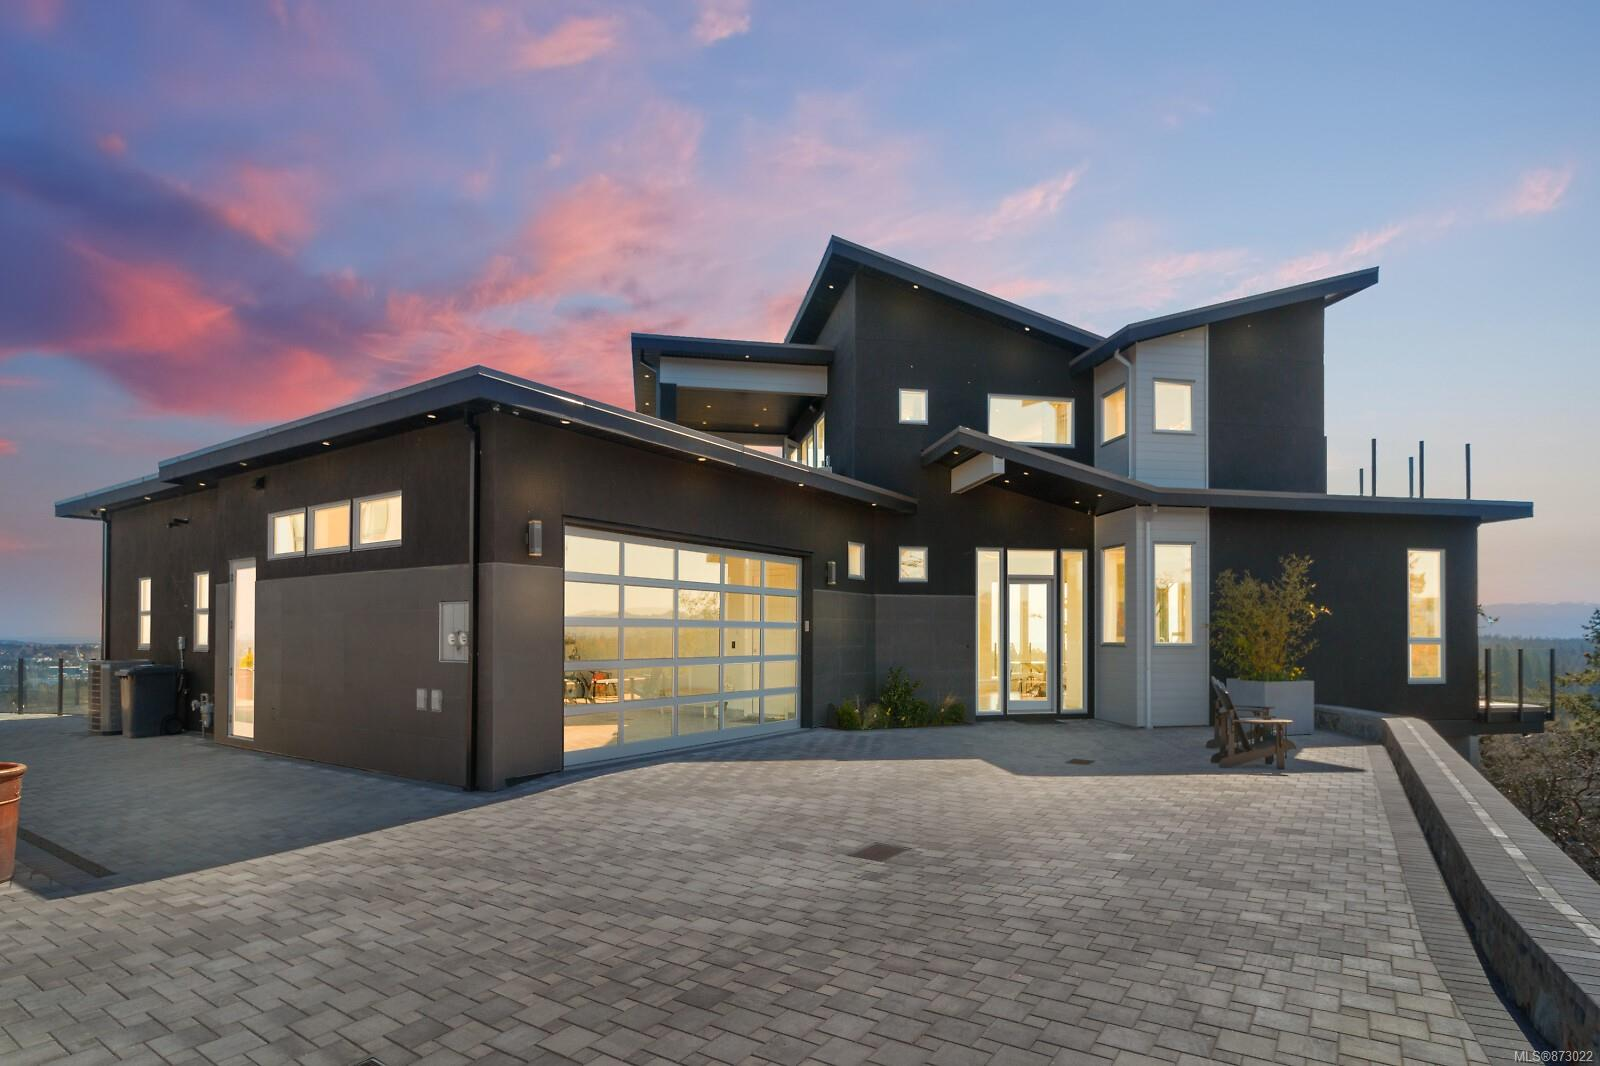 Indulge yourself! Truly one of the finest homes & locations found in Victoria BC Canada! Imagine breathtaking 360 degree views of the ocean, Mt Baker and the twinkling city lights of Victoria. Enjoy your exquisite 2018 custom home with soaring 12 ft ceilings, floor to ceiling windows, imagine 5600 sq ft of luxury living offering the ultimate gourmet kitchen with quartz countertops, oversized breakfast bar and large walk-in pantry. Enjoy the ultimate dining experience with your inline DR and LR all designed with world class views. Spacious master on the main floor to fall asleep watching the sparkling city lights of Victoria. Pamper yourself with a luxury ensuite w/oversized tiled shower & deep soaker tub. The upstairs sky bar rec room with wrap around windows overlooking the entire S. Vancouver island, outdoor, covered BBQ centre and 2900 sq ft of deck and patios to showcase the amazing views!. Full lower level with theatre room and more .66 acre, new home warranty and no GST. Call now